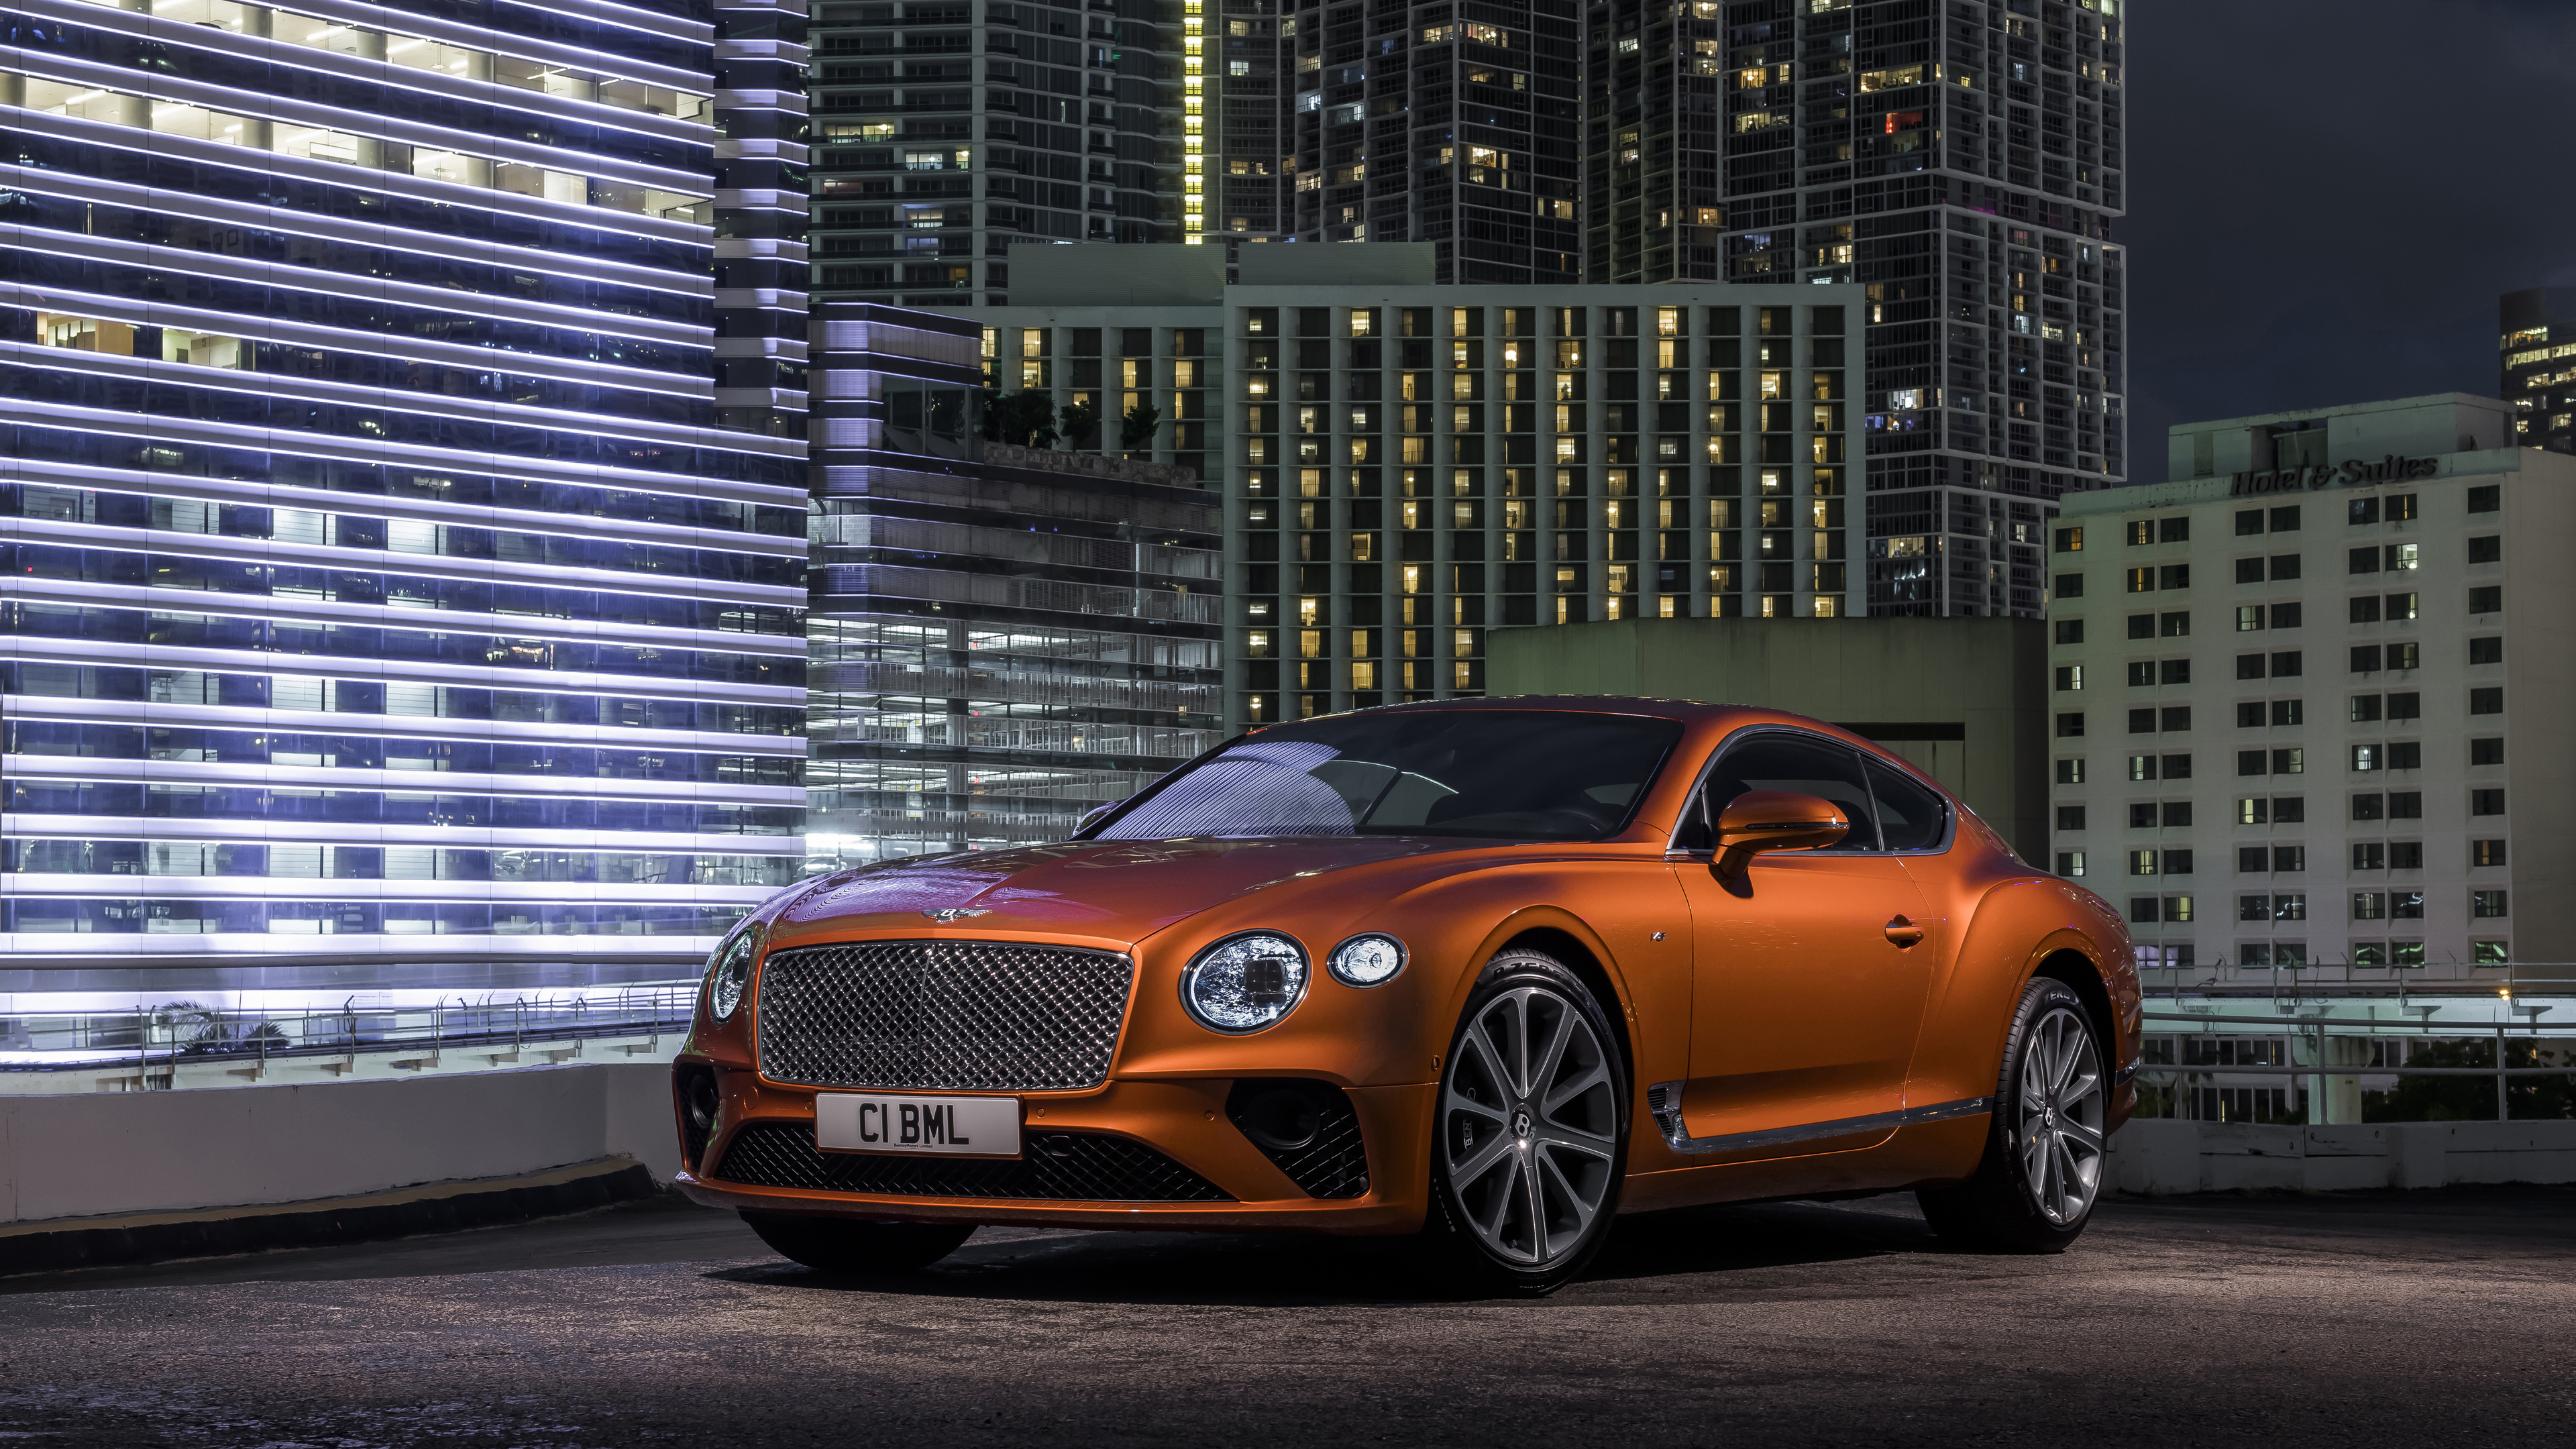 2019 bentley continental gt v8 4k 1554245213 - 2019 Bentley Continental GT V8 4k - hd-wallpapers, cars wallpapers, bentley wallpapers, bentley continental gt wallpapers, 8k wallpapers, 5k wallpapers, 4k-wallpapers, 2019 cars wallpapers